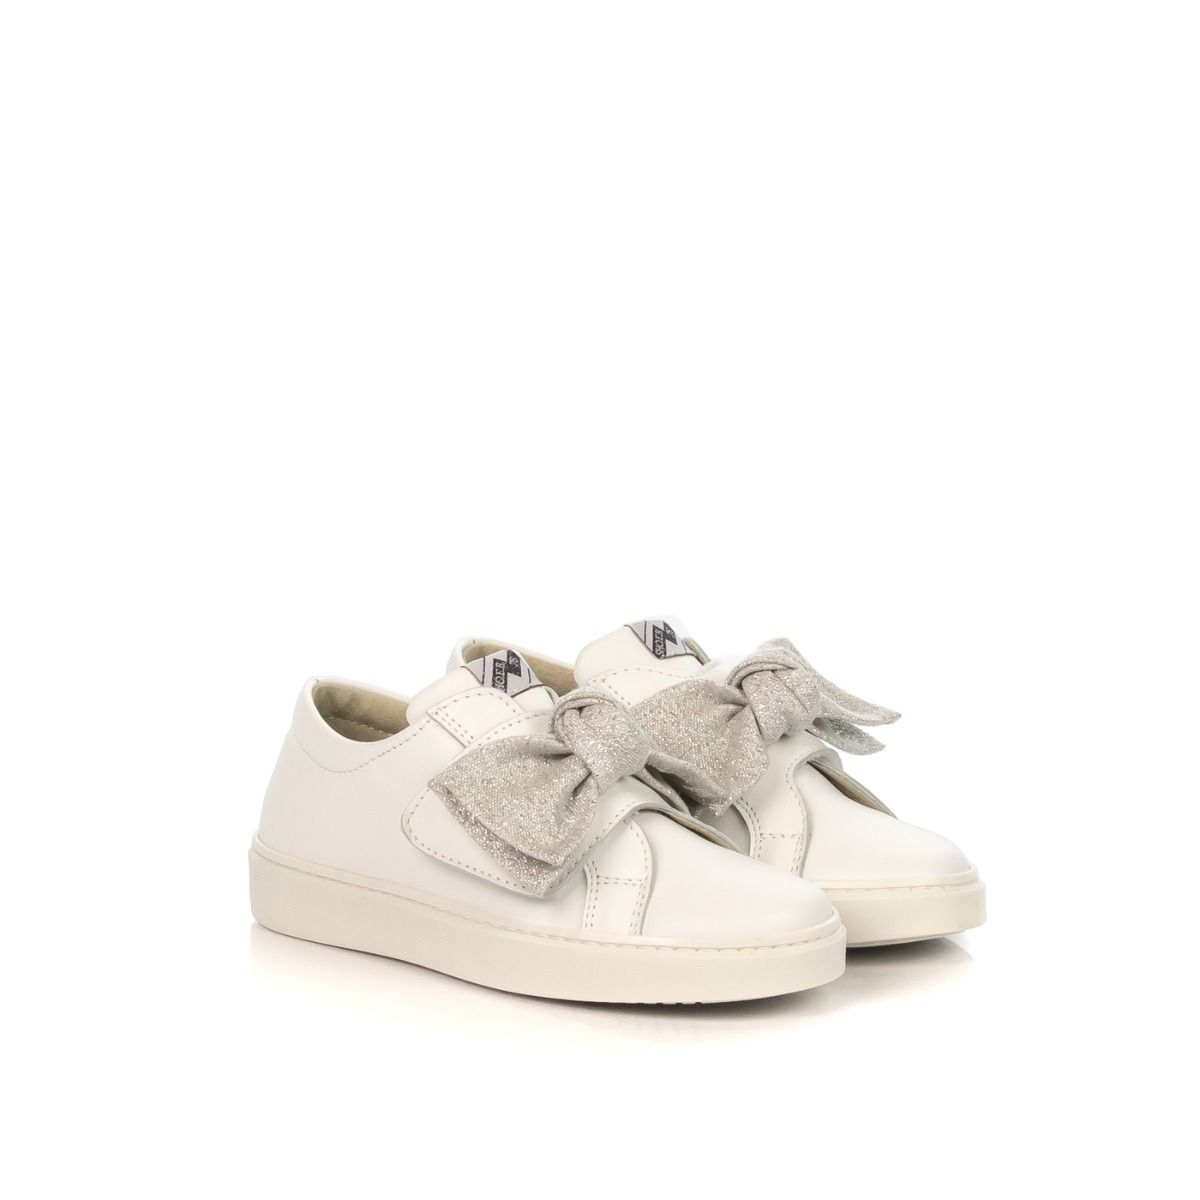 01af4d1095 E.B. SHOES SNEAKERS BAMBINA 1202-Z2 PELLE BIANCA FIOCCO